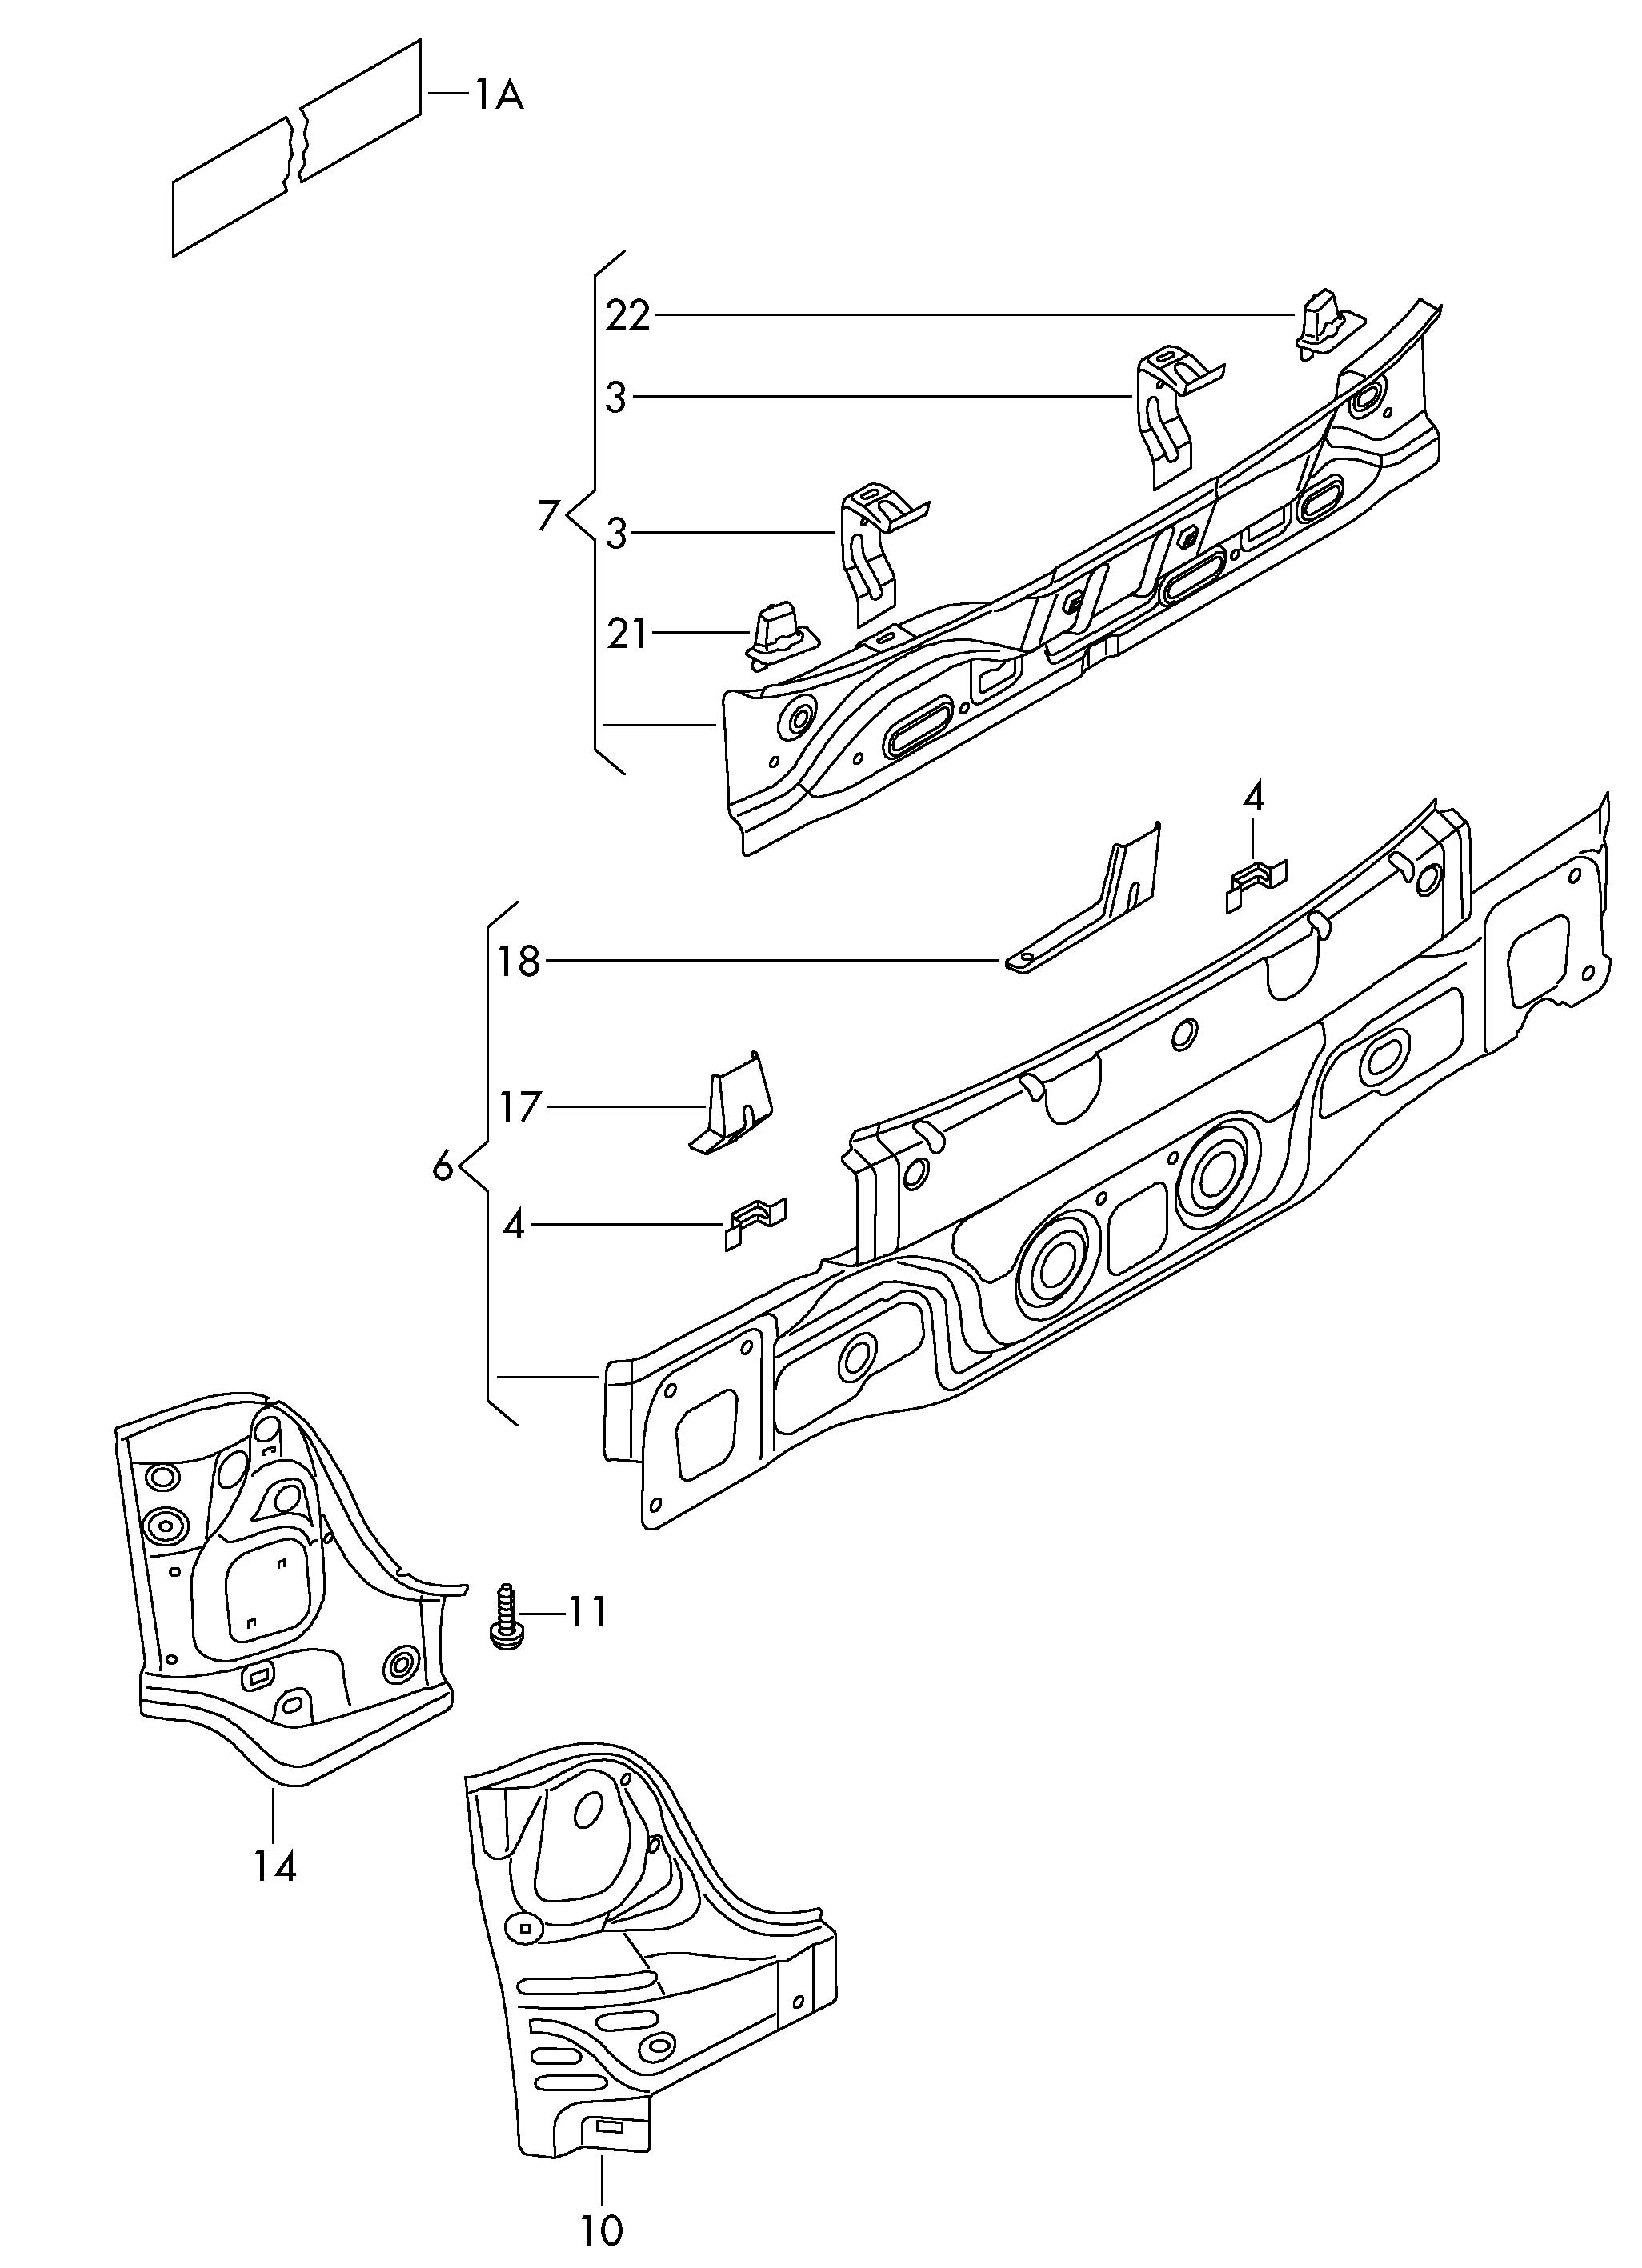 2002 Kia Rio Rear Axle Diagram also 2011 Chevy Equinox Rear Suspension Diagram additionally Honda Accord Suspension Diagram together with Toyota Parts Schematic together with Vw Swing Axle Transmission Diagram. on suspension control arm bushings replacement cost